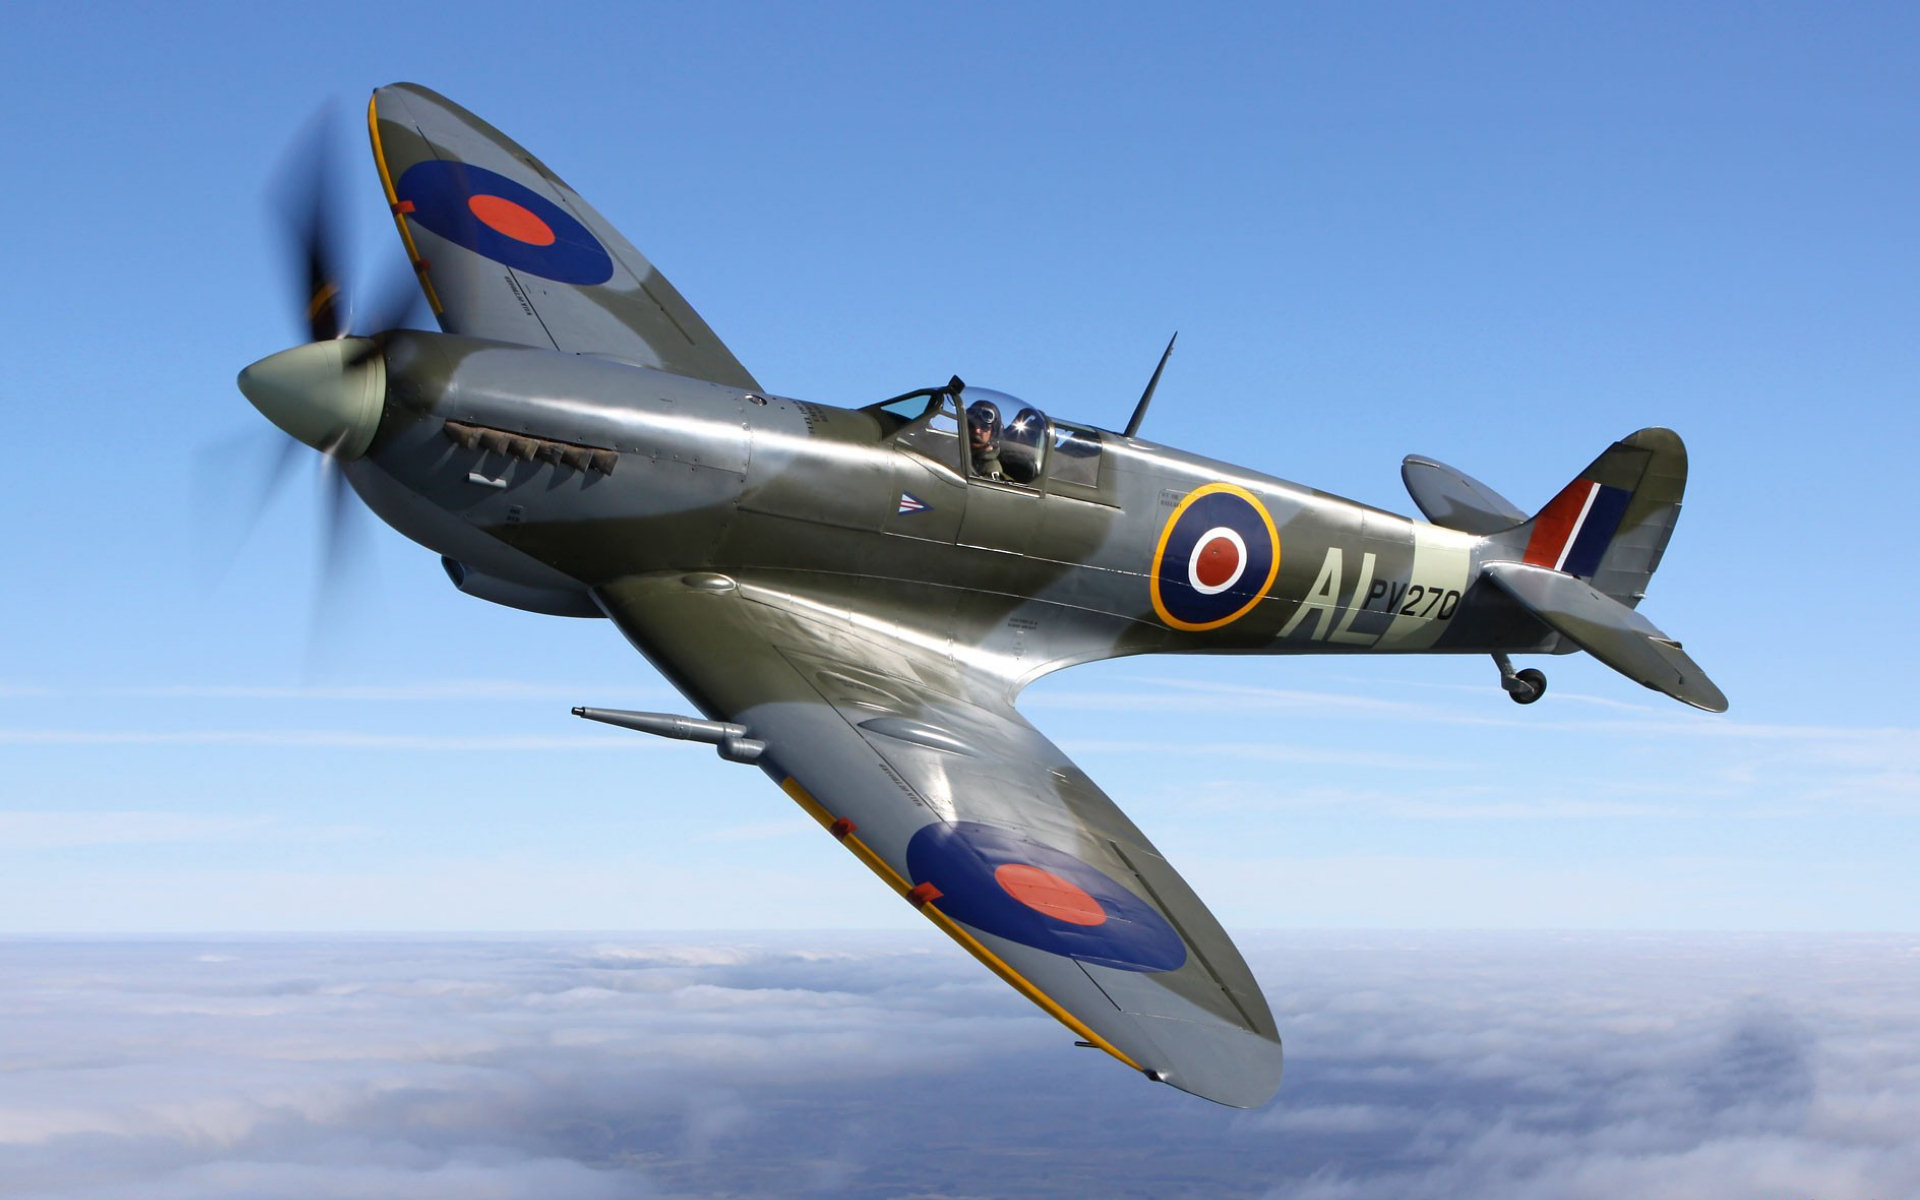 Spitfire Wallpaper Inspiration For Your Computer Walls